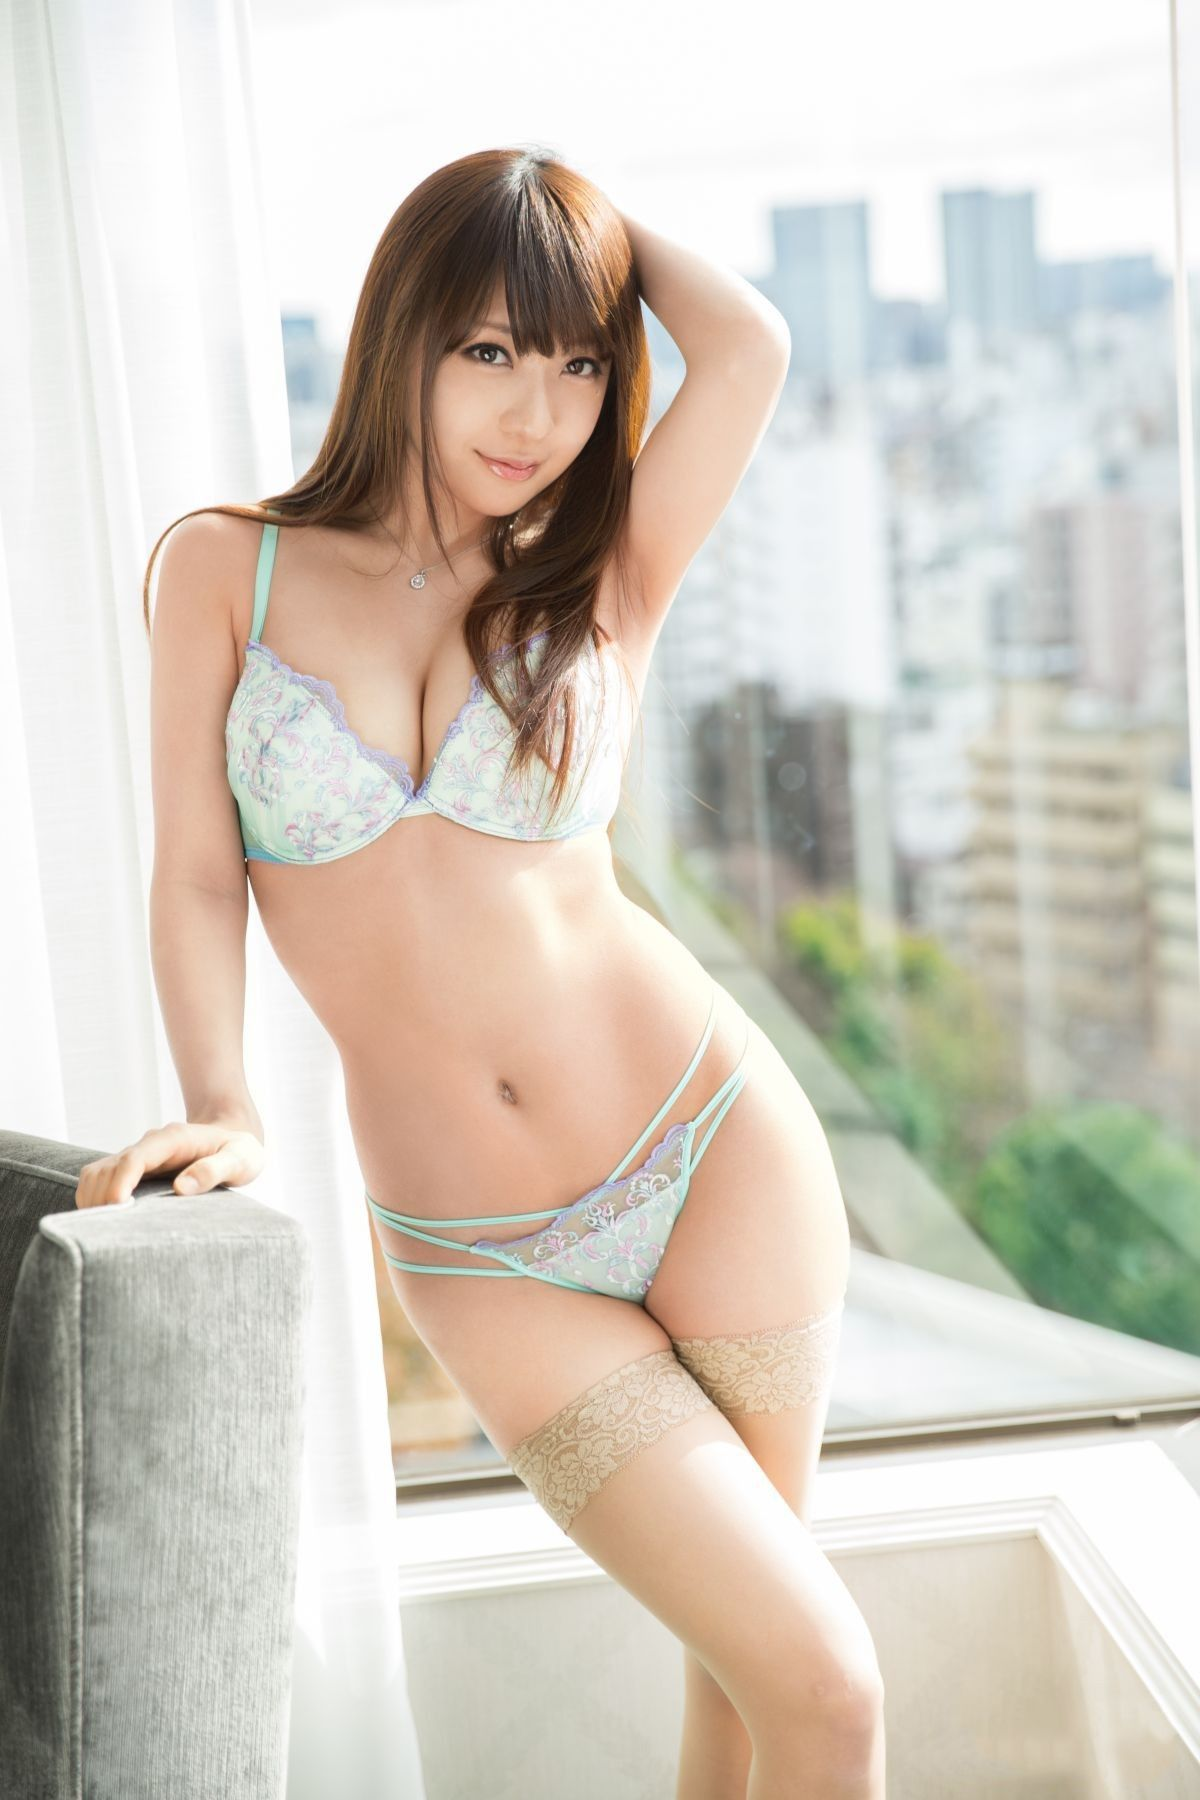 Interesting. Tell Sexy japanese women lingerie with you